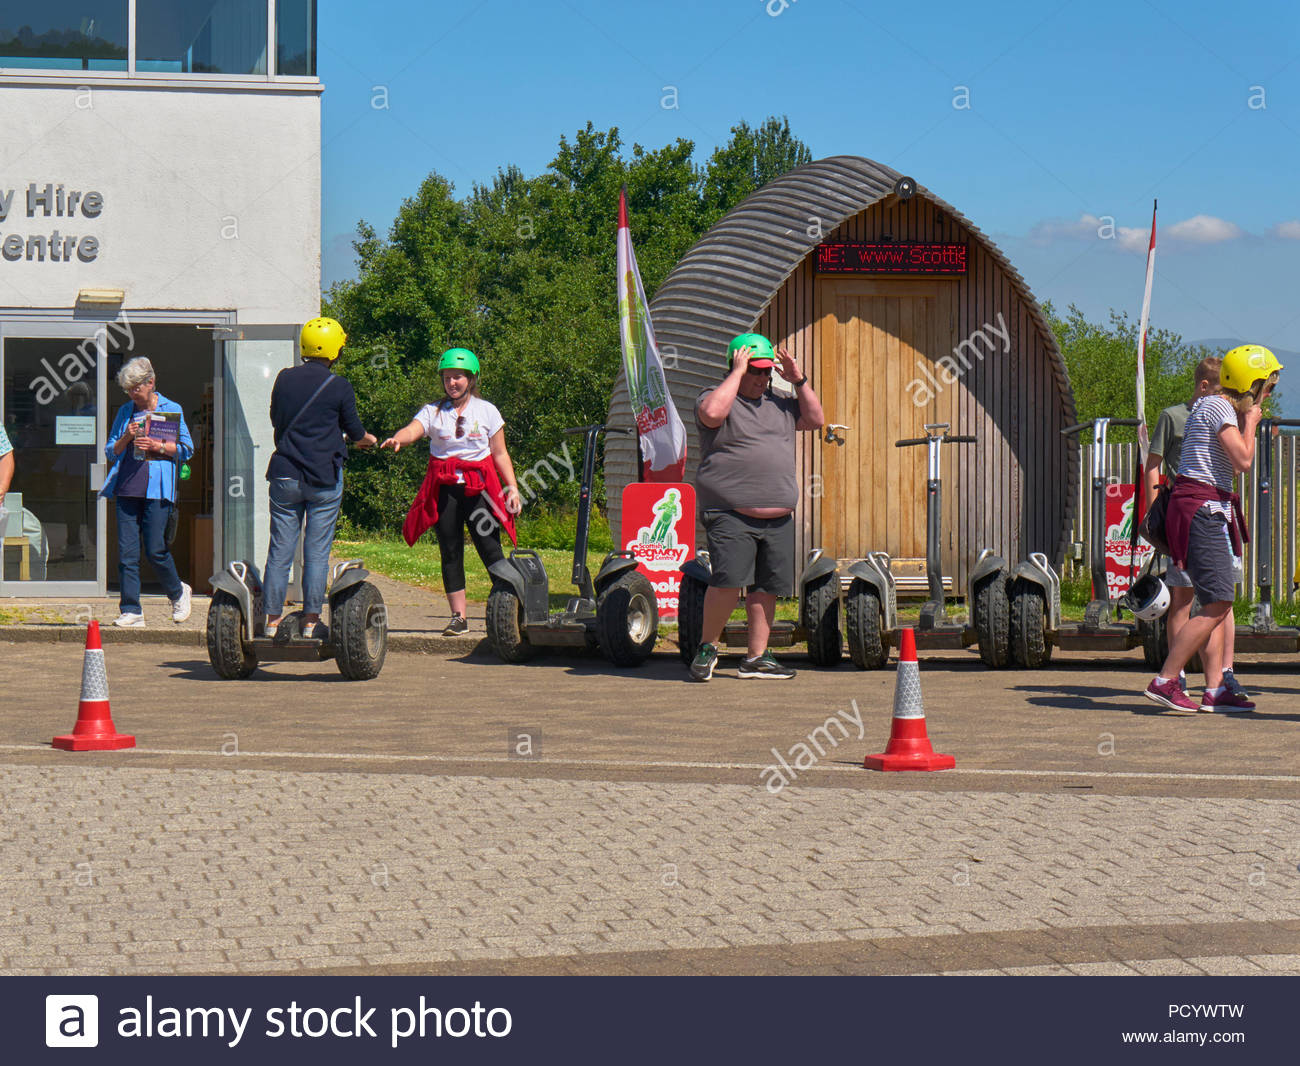 segway two-wheeled self balancing personal transporter invented by dean kamen in falkirk wheel hire centre in scotland uk - Stock Image